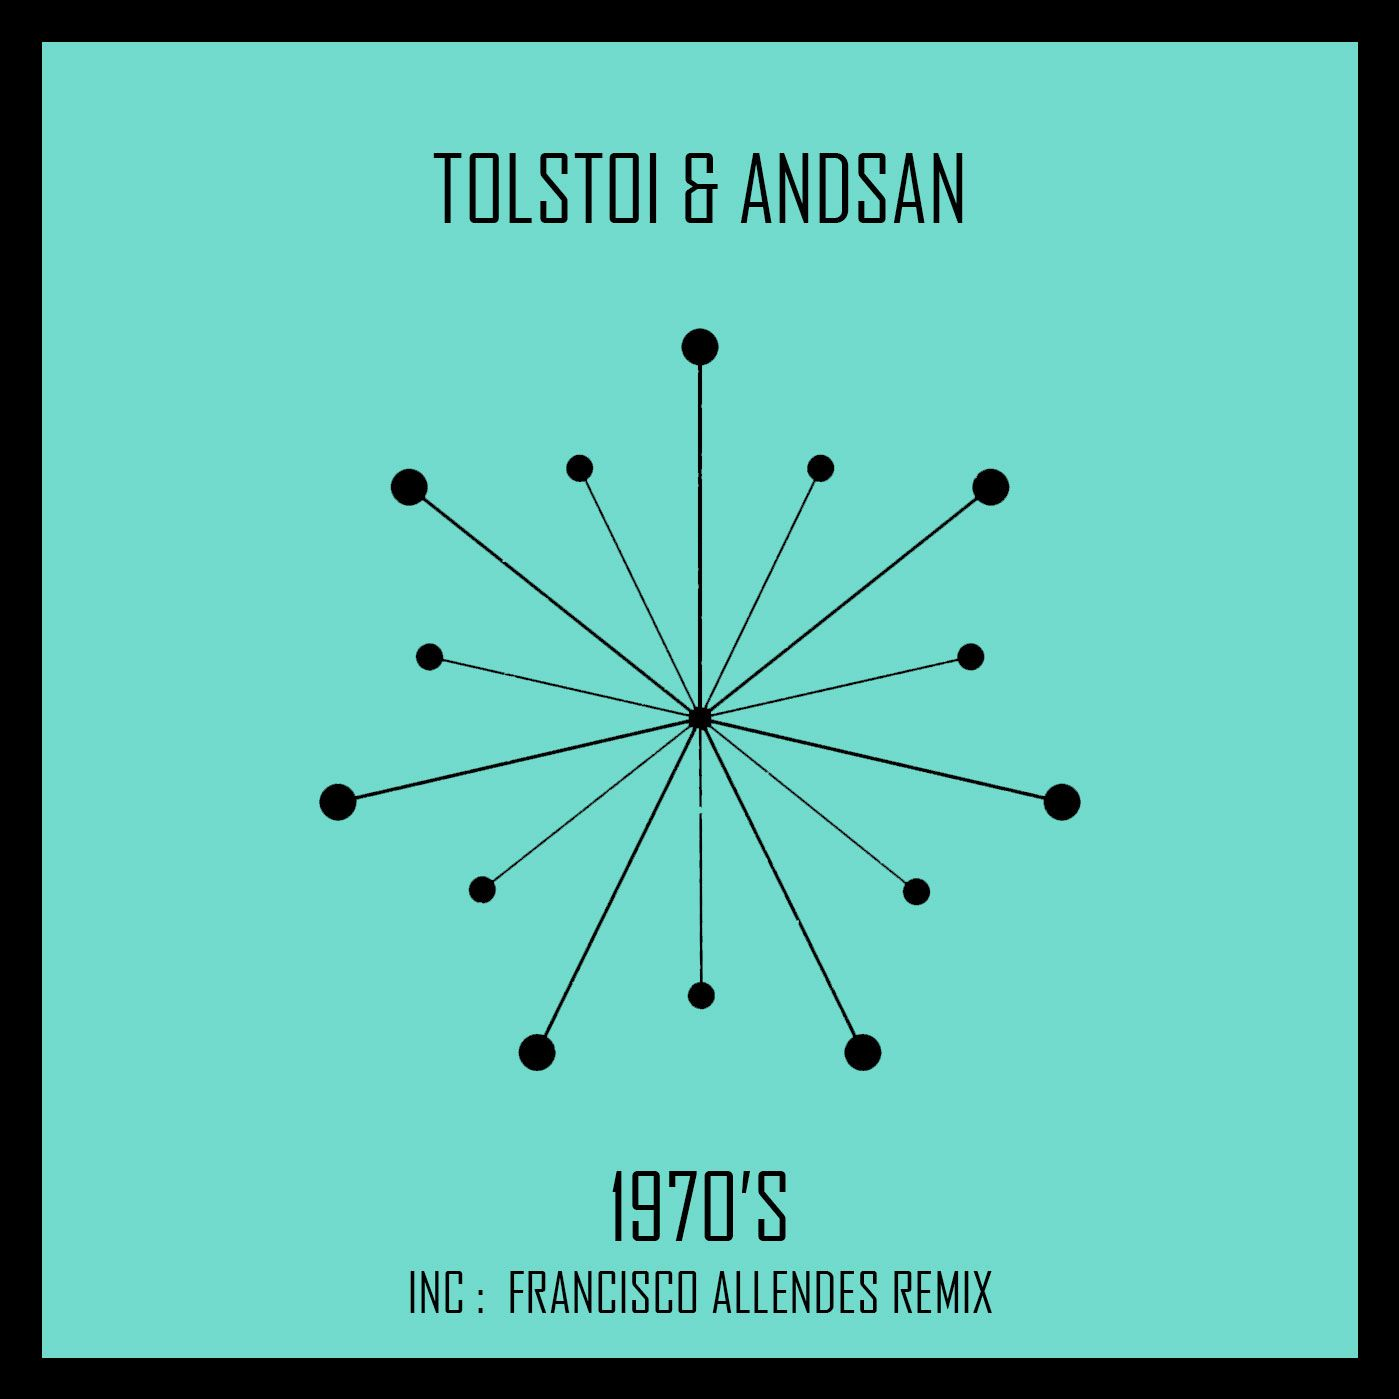 Tolstoi & Andsan - Grind (Francisco Allendes Remix)[OUT NOW]